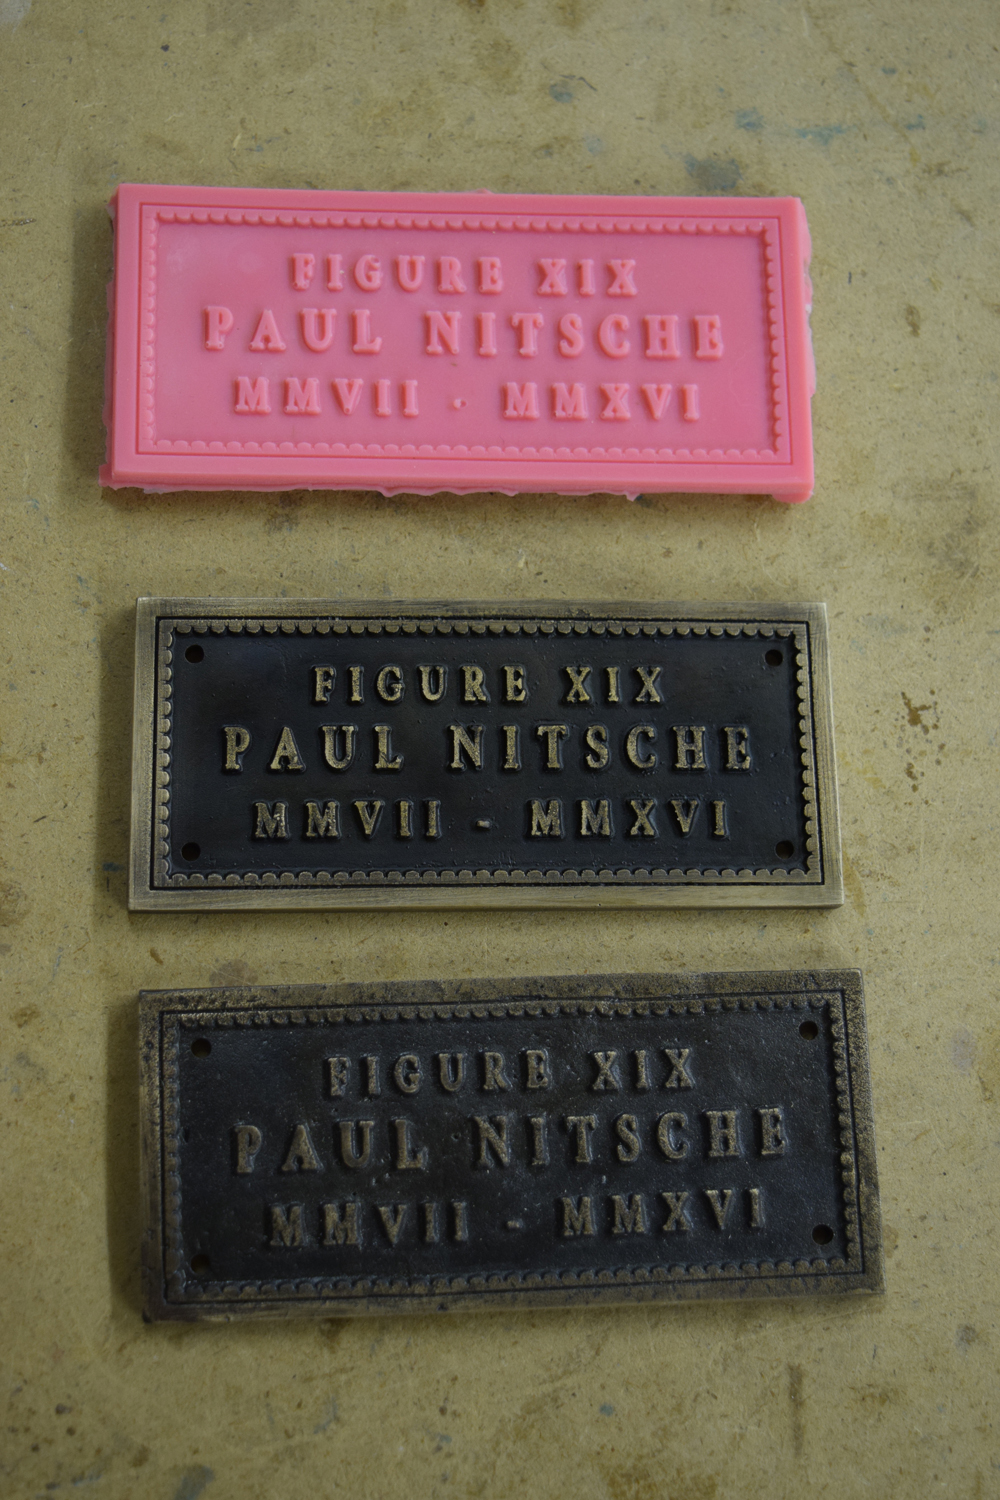 Comparison of the title plates. The original wax (top), the new title plate (middle), and the original title plate (bottom).